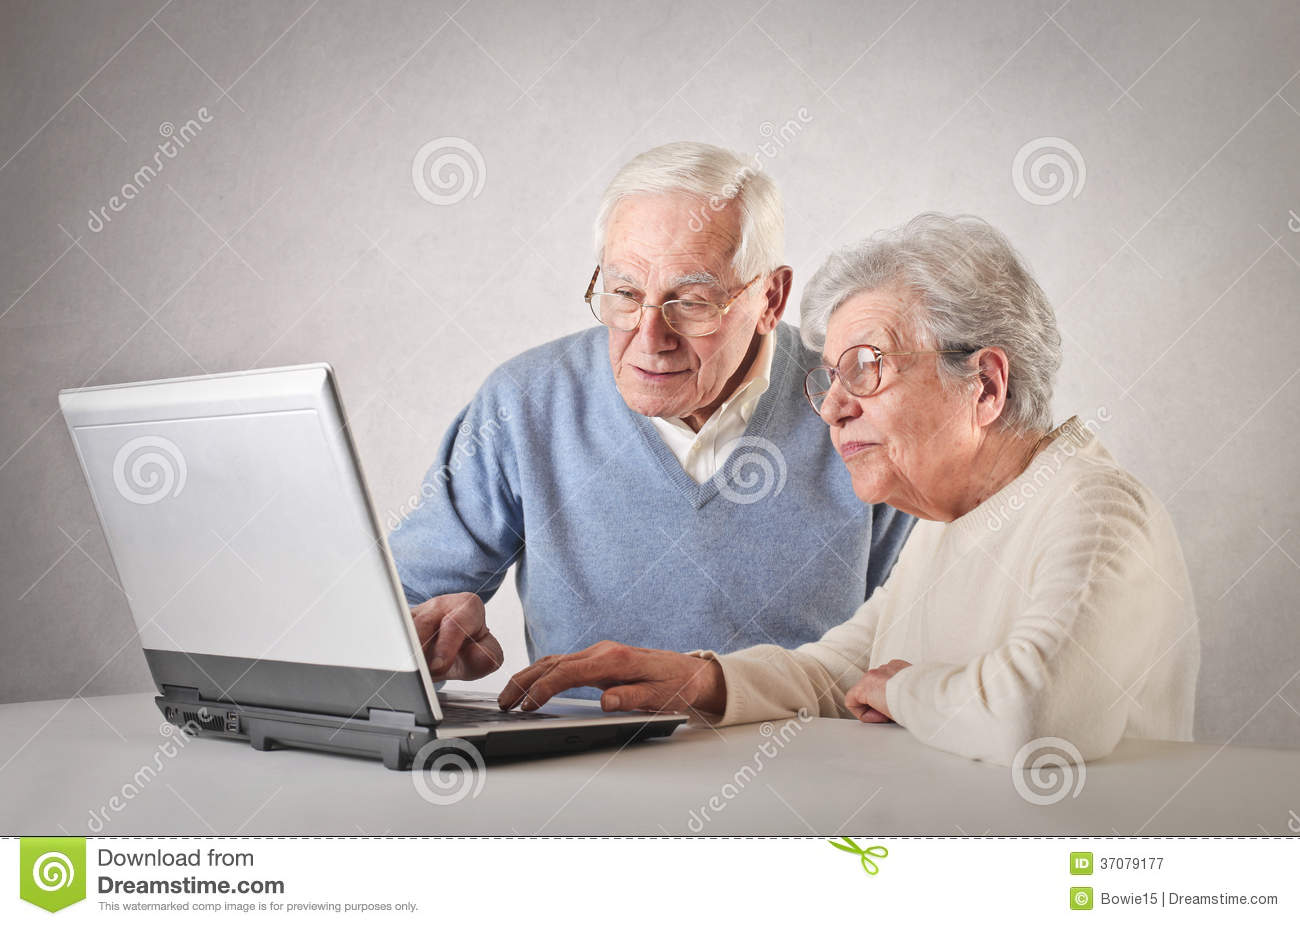 Old people using a laptop